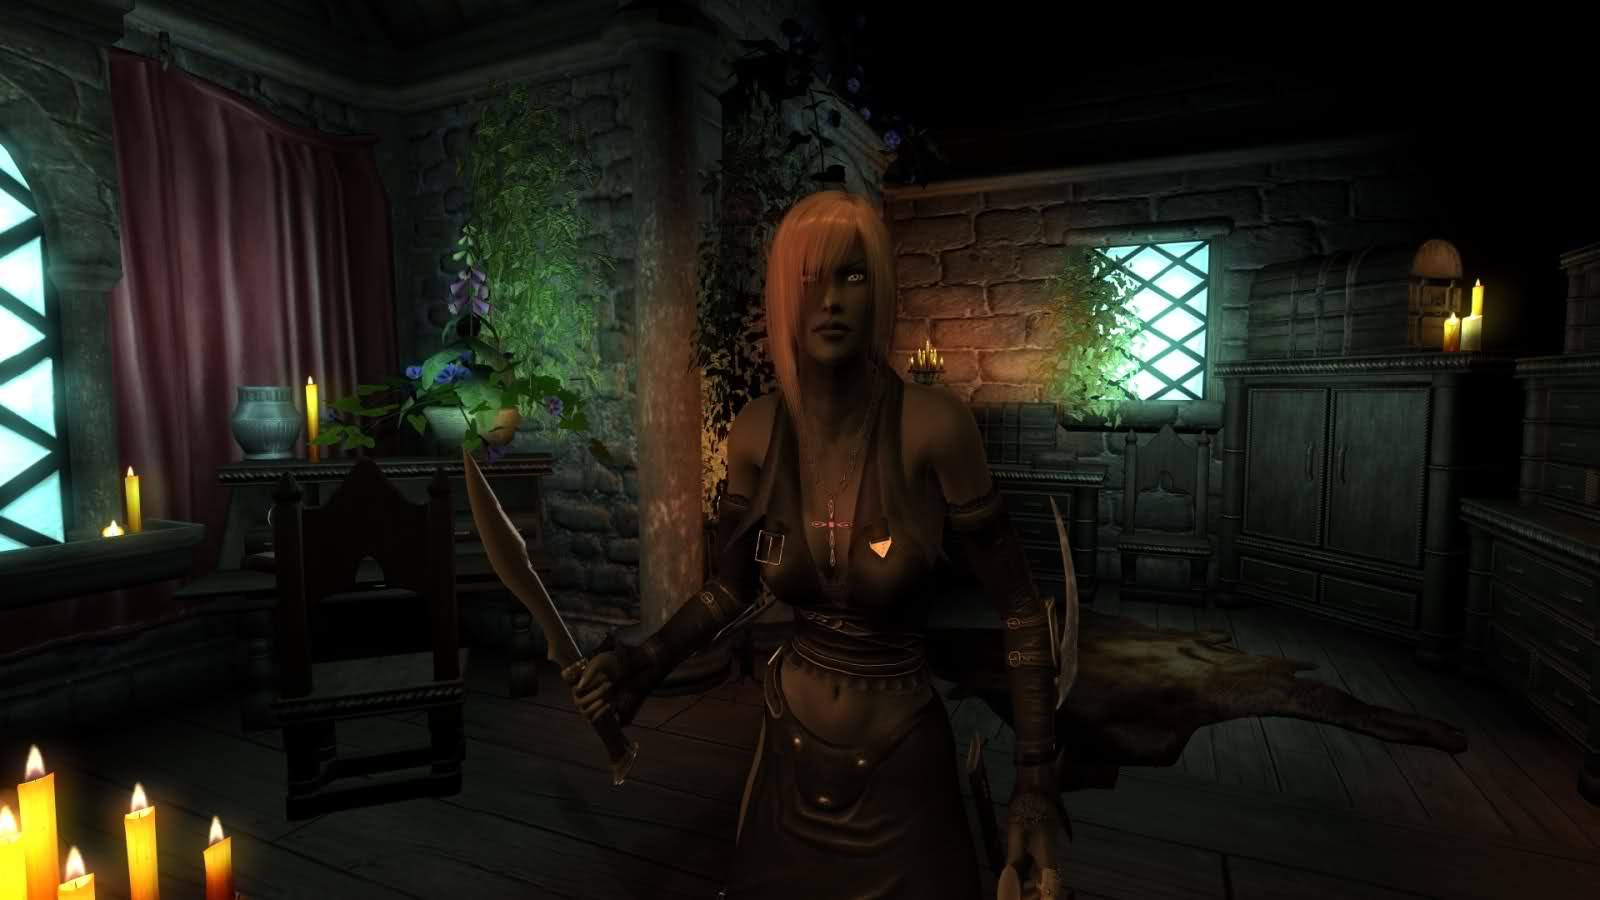 TESIV: Oblivion - So you want to start using mods, eh? | NeoGAF